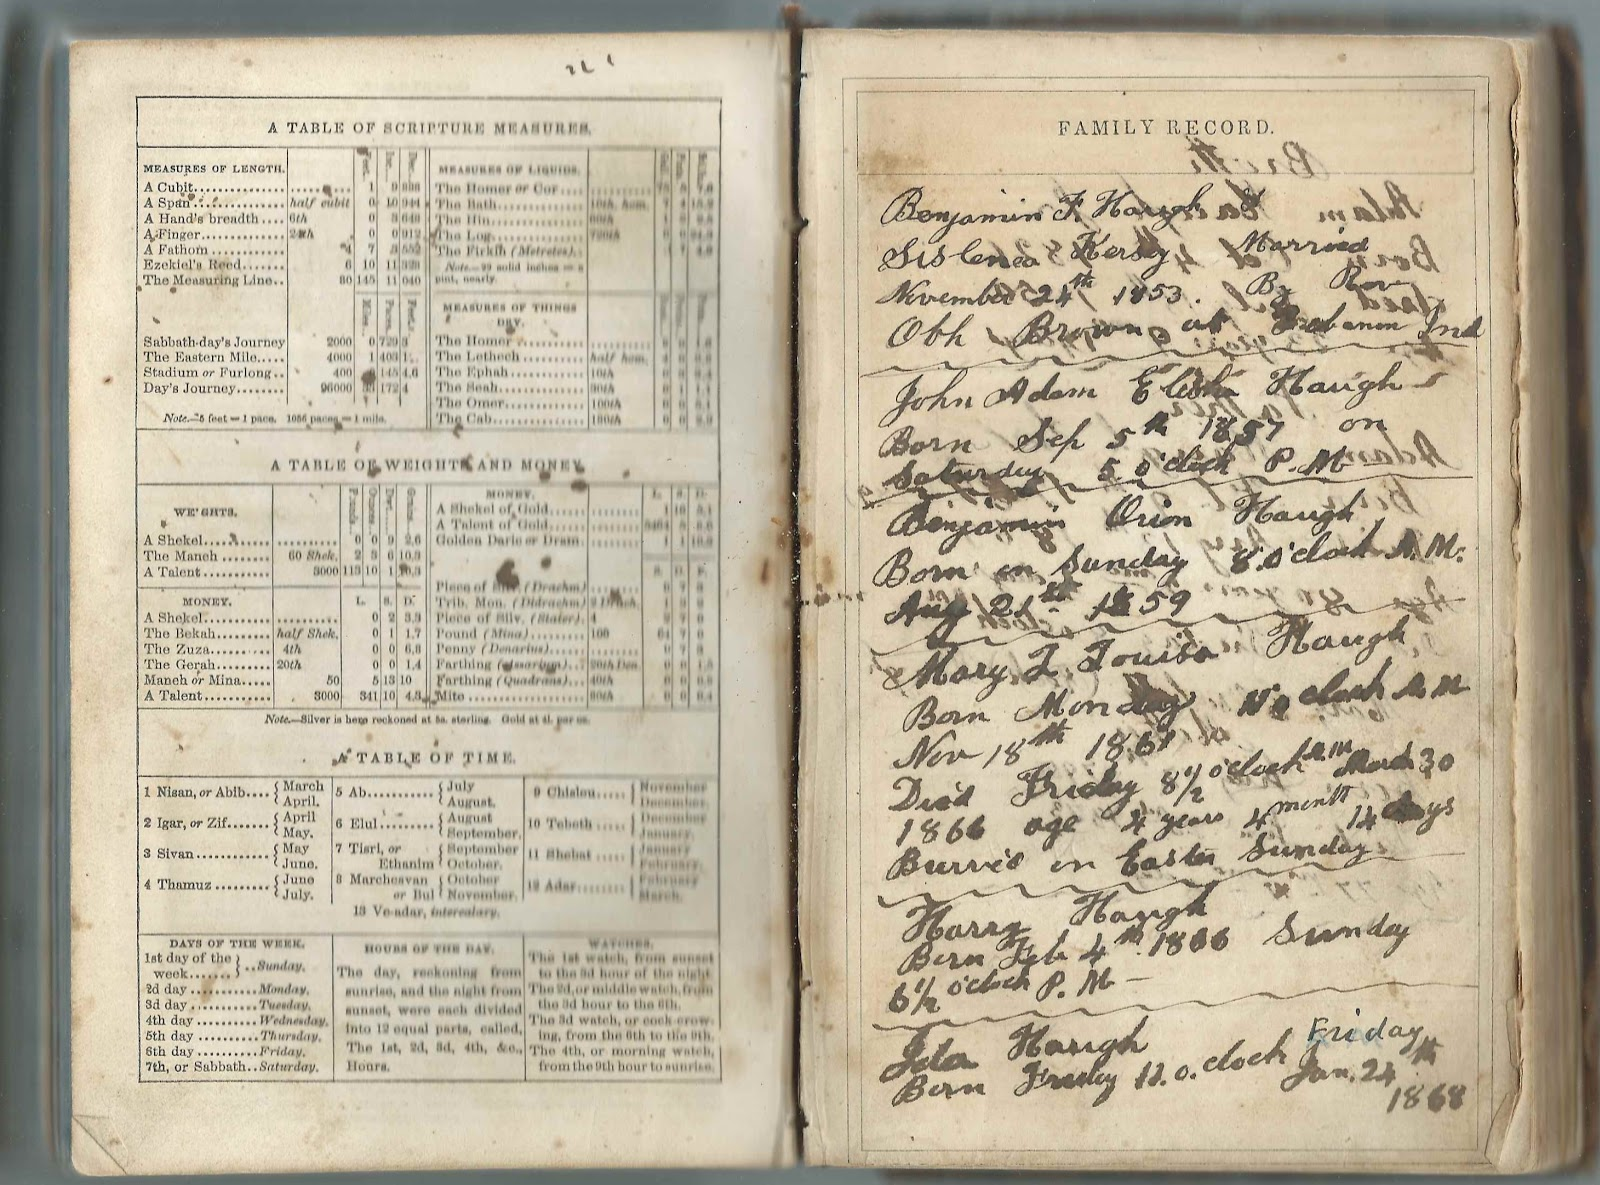 Heirlooms reunited bible of benjamin franklin haugh 1829 1912 other pages provide birth death and age information on aiddatafo Gallery